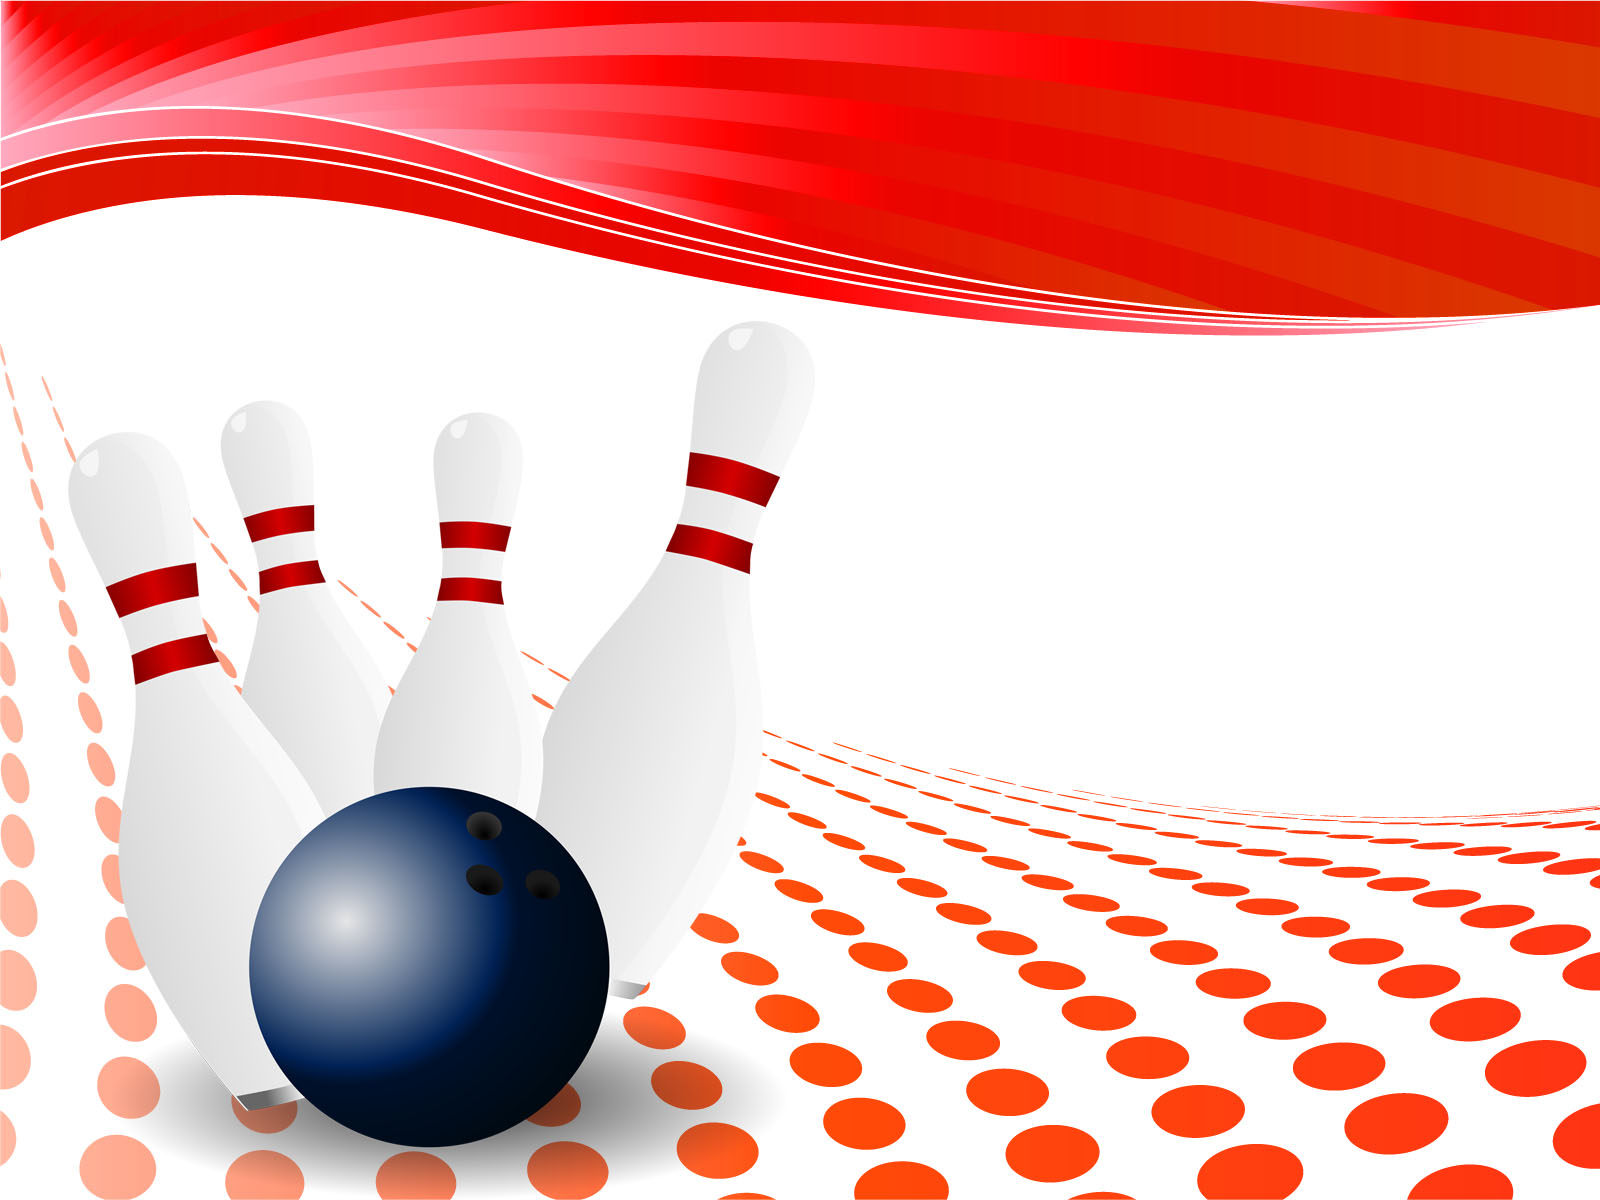 Bowling Pin Powerpoint Design PPT Backgrounds - Games ...